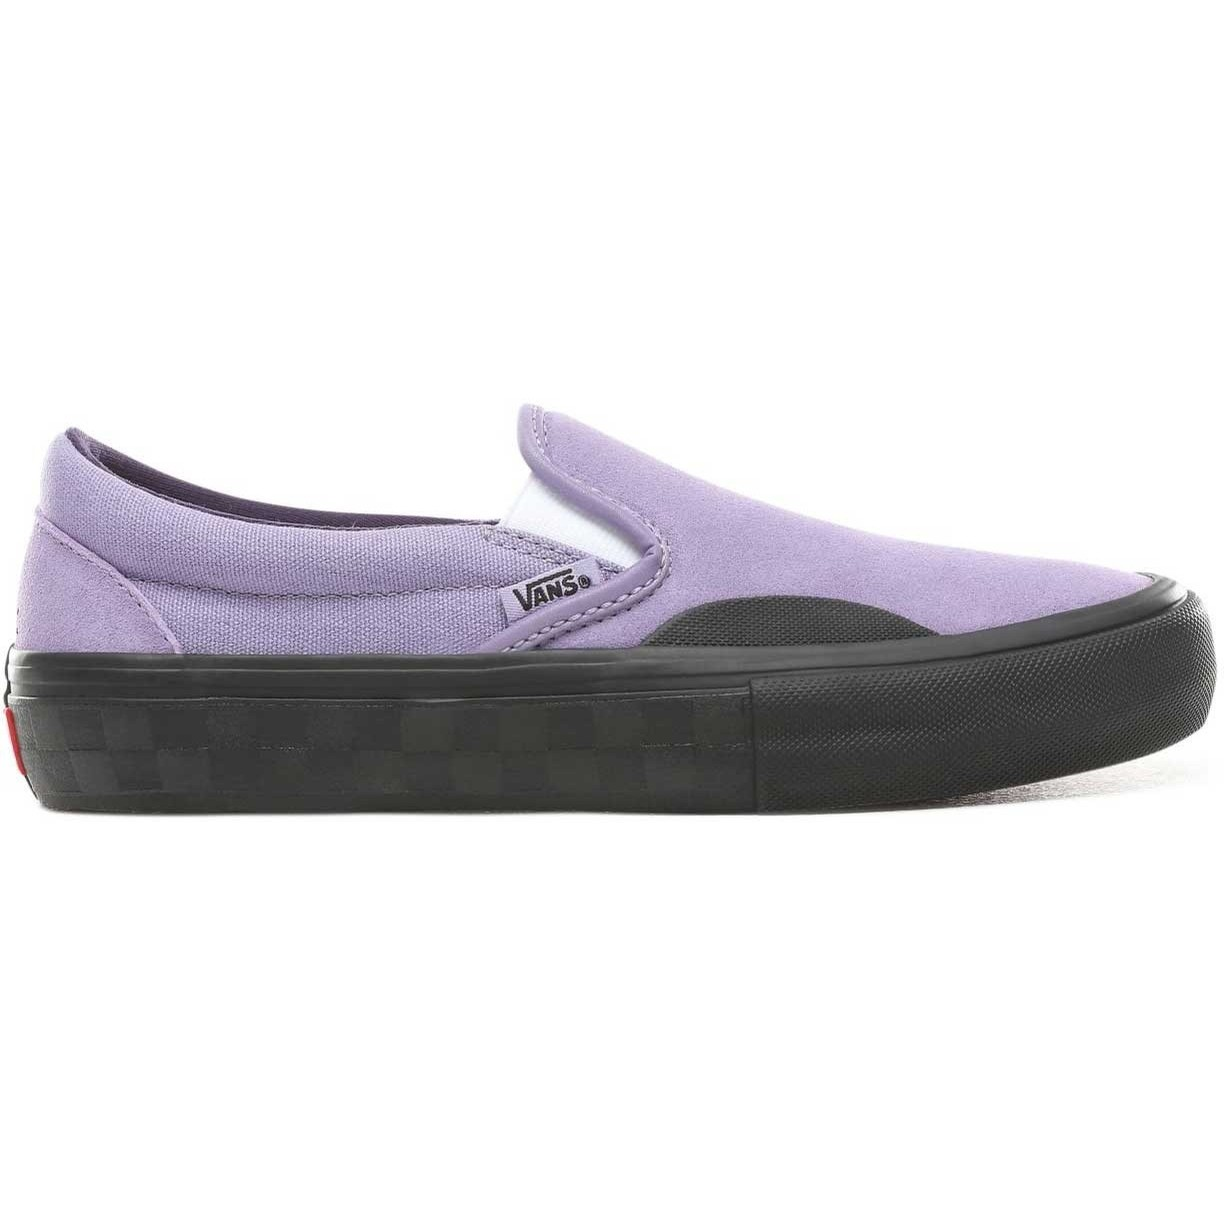 Slip-On Pro (Lizzie Armanto) Daybreak/Black